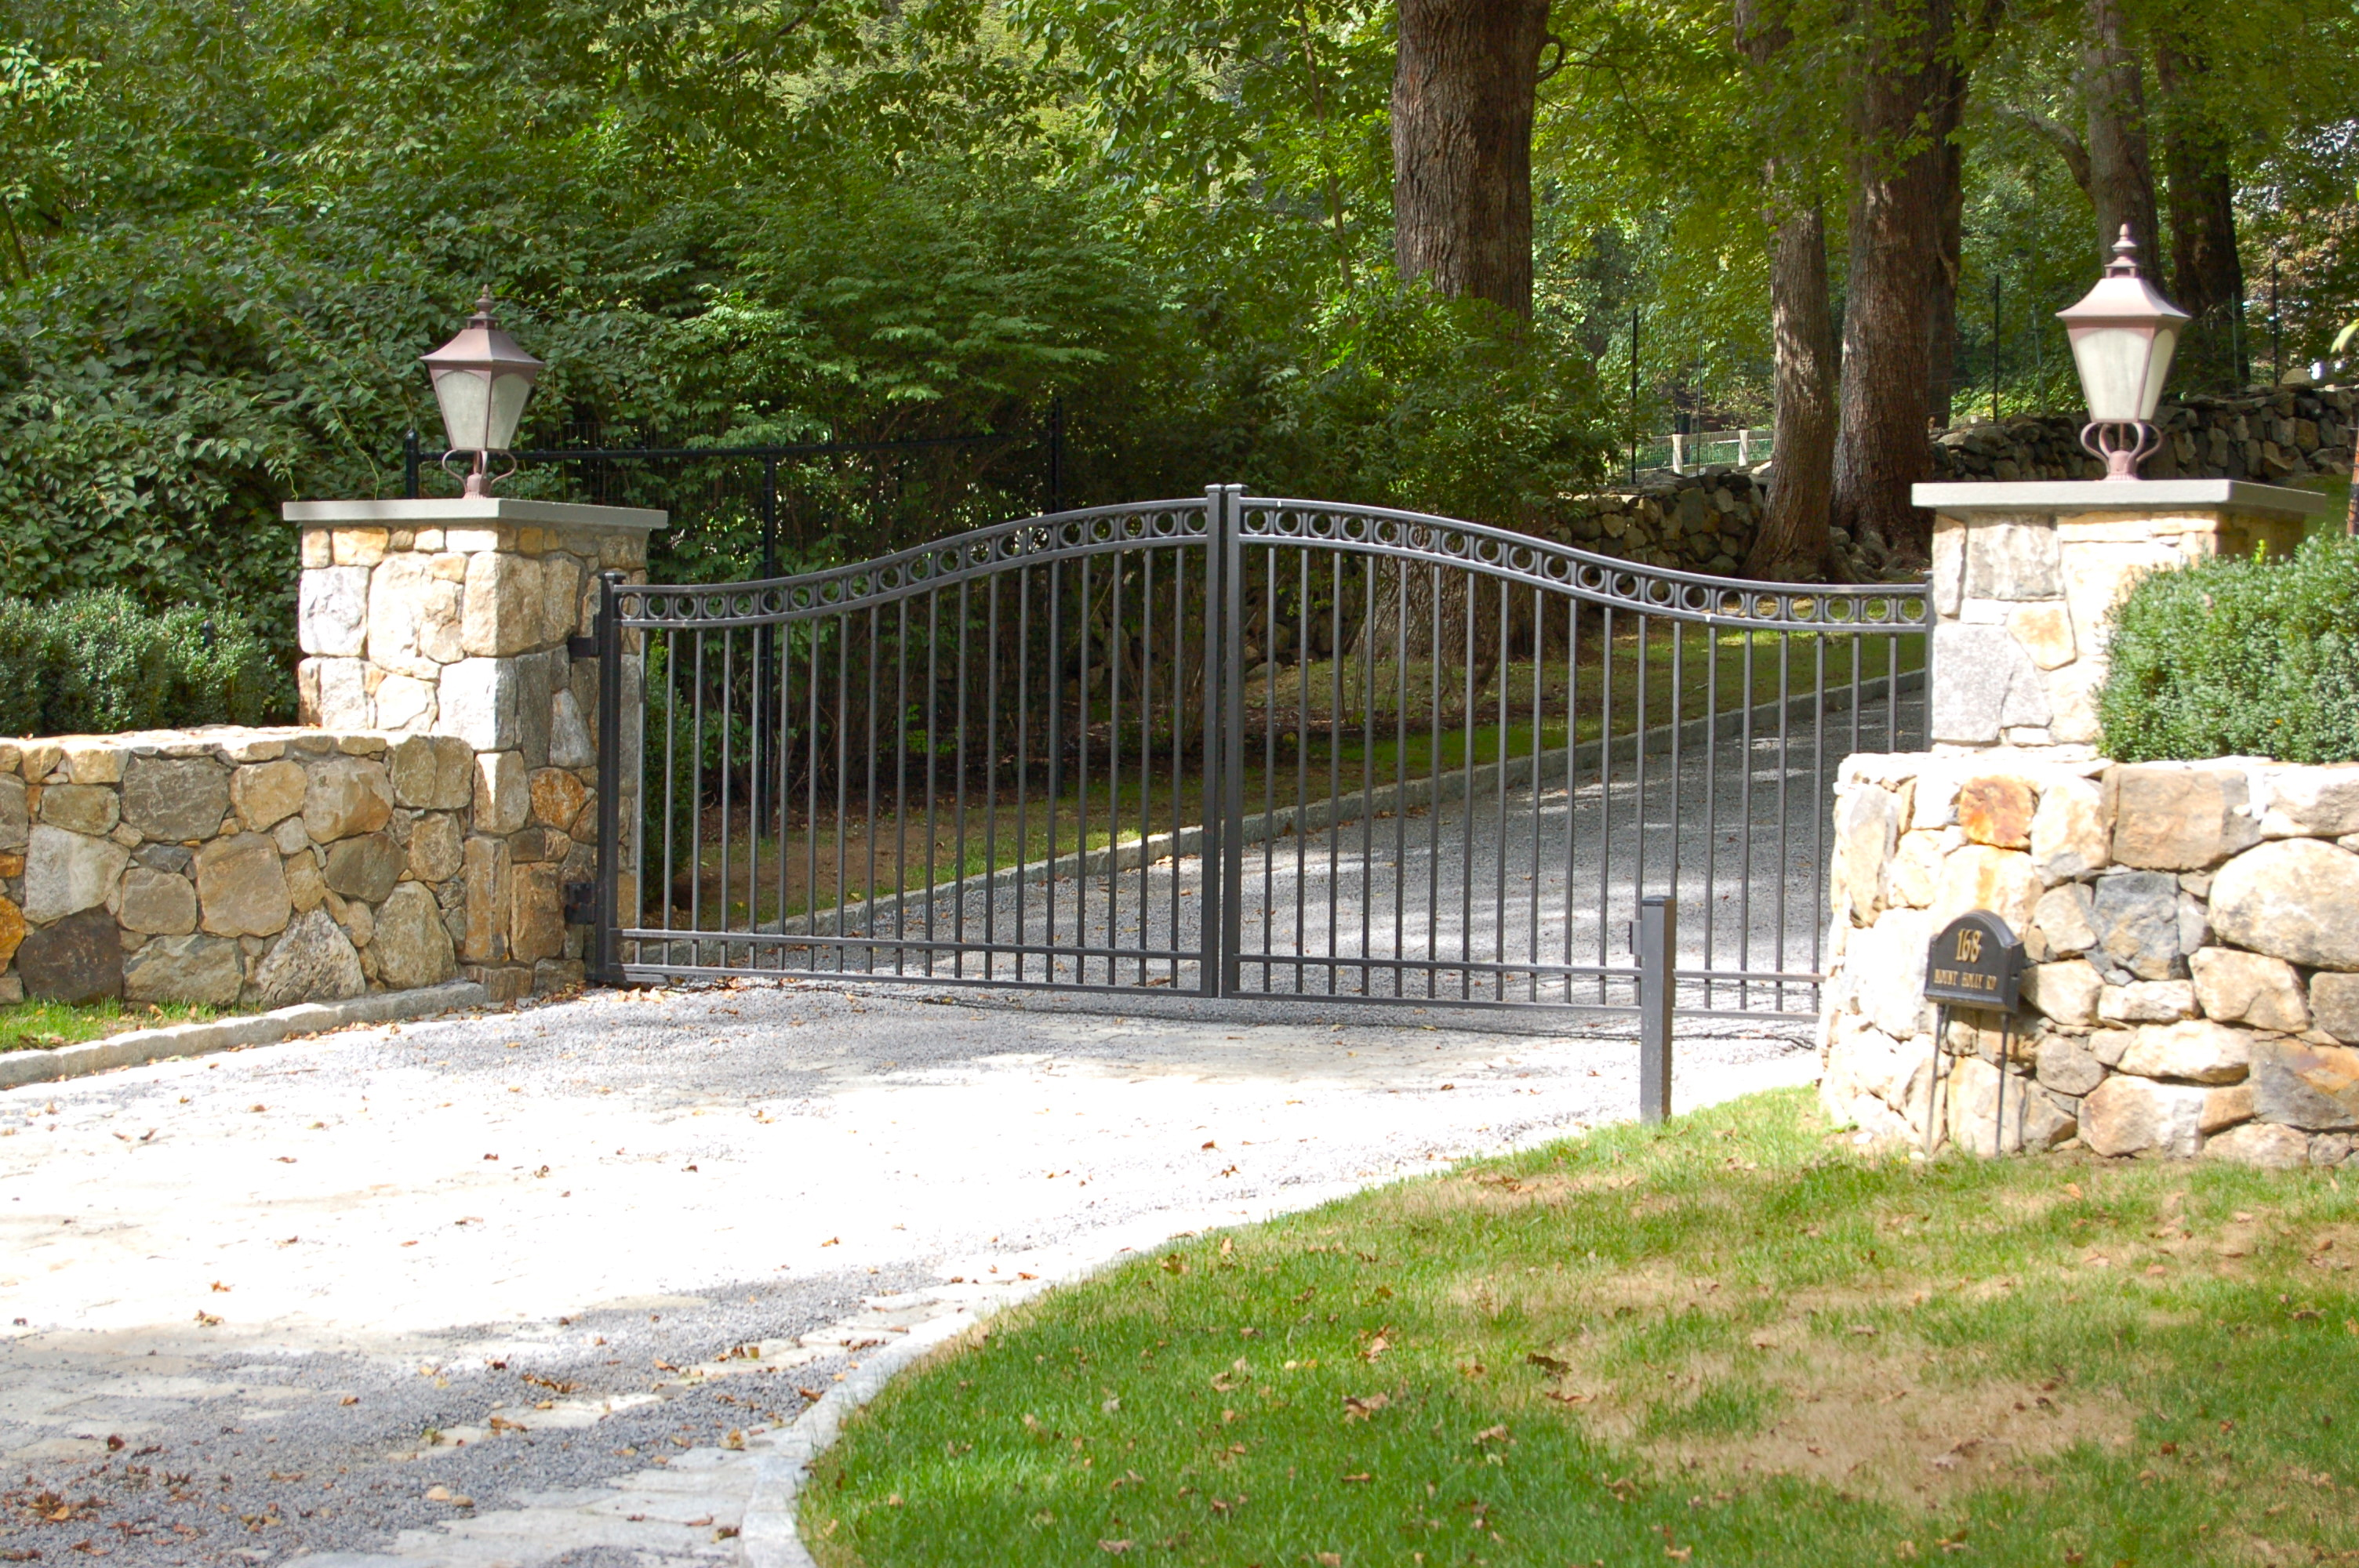 Red Fox Fence Wrought Iron Driveway Gate